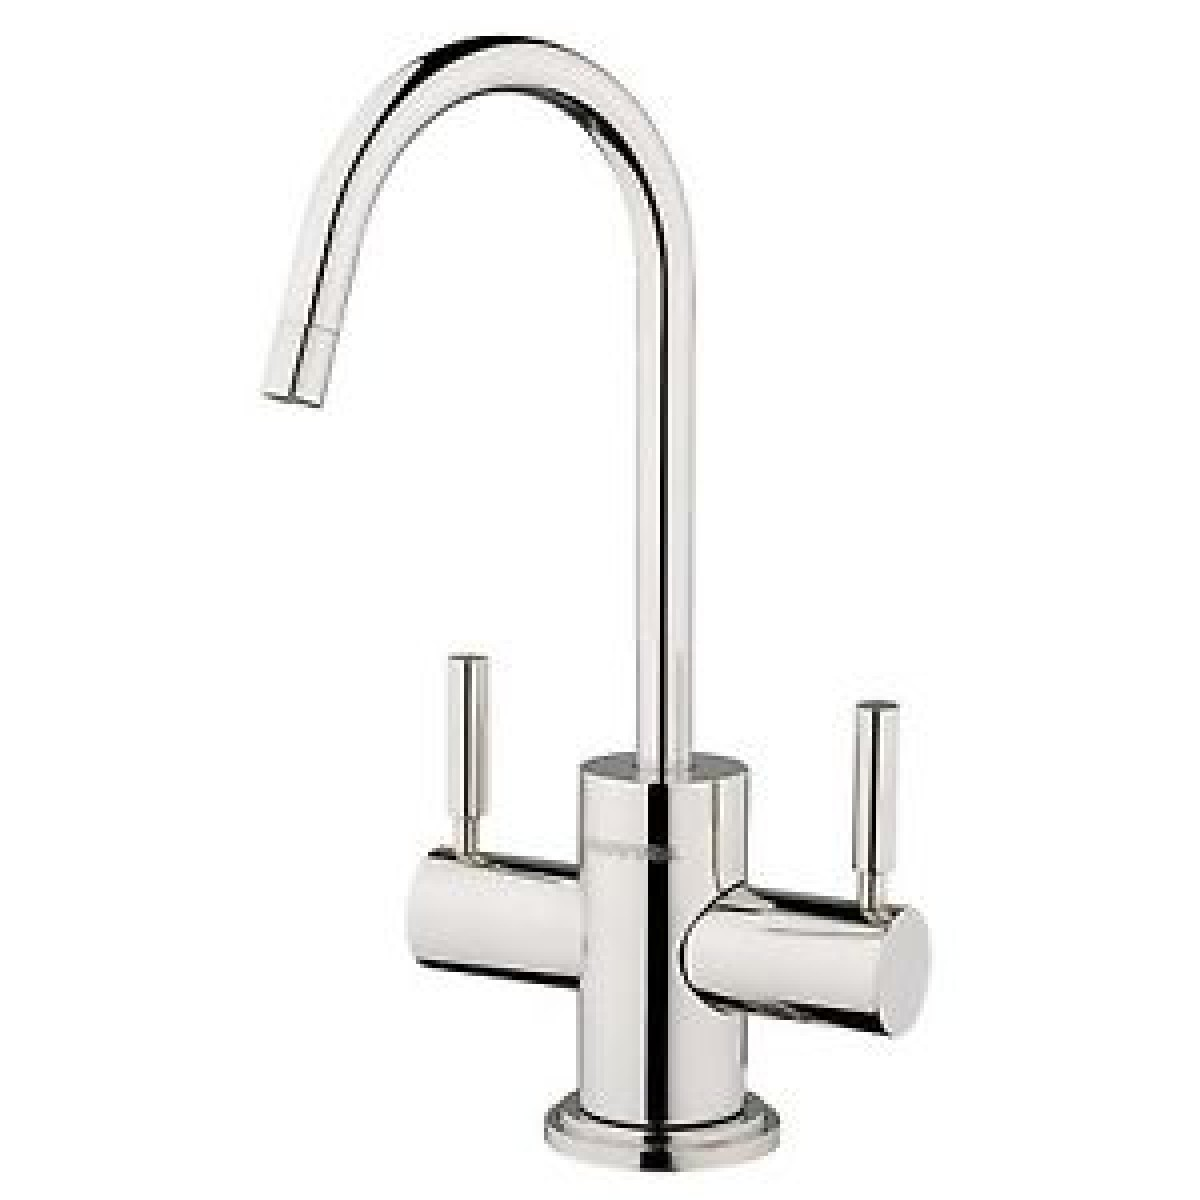 Replacement Faucets for Point of Use Water | Waterfilters.net